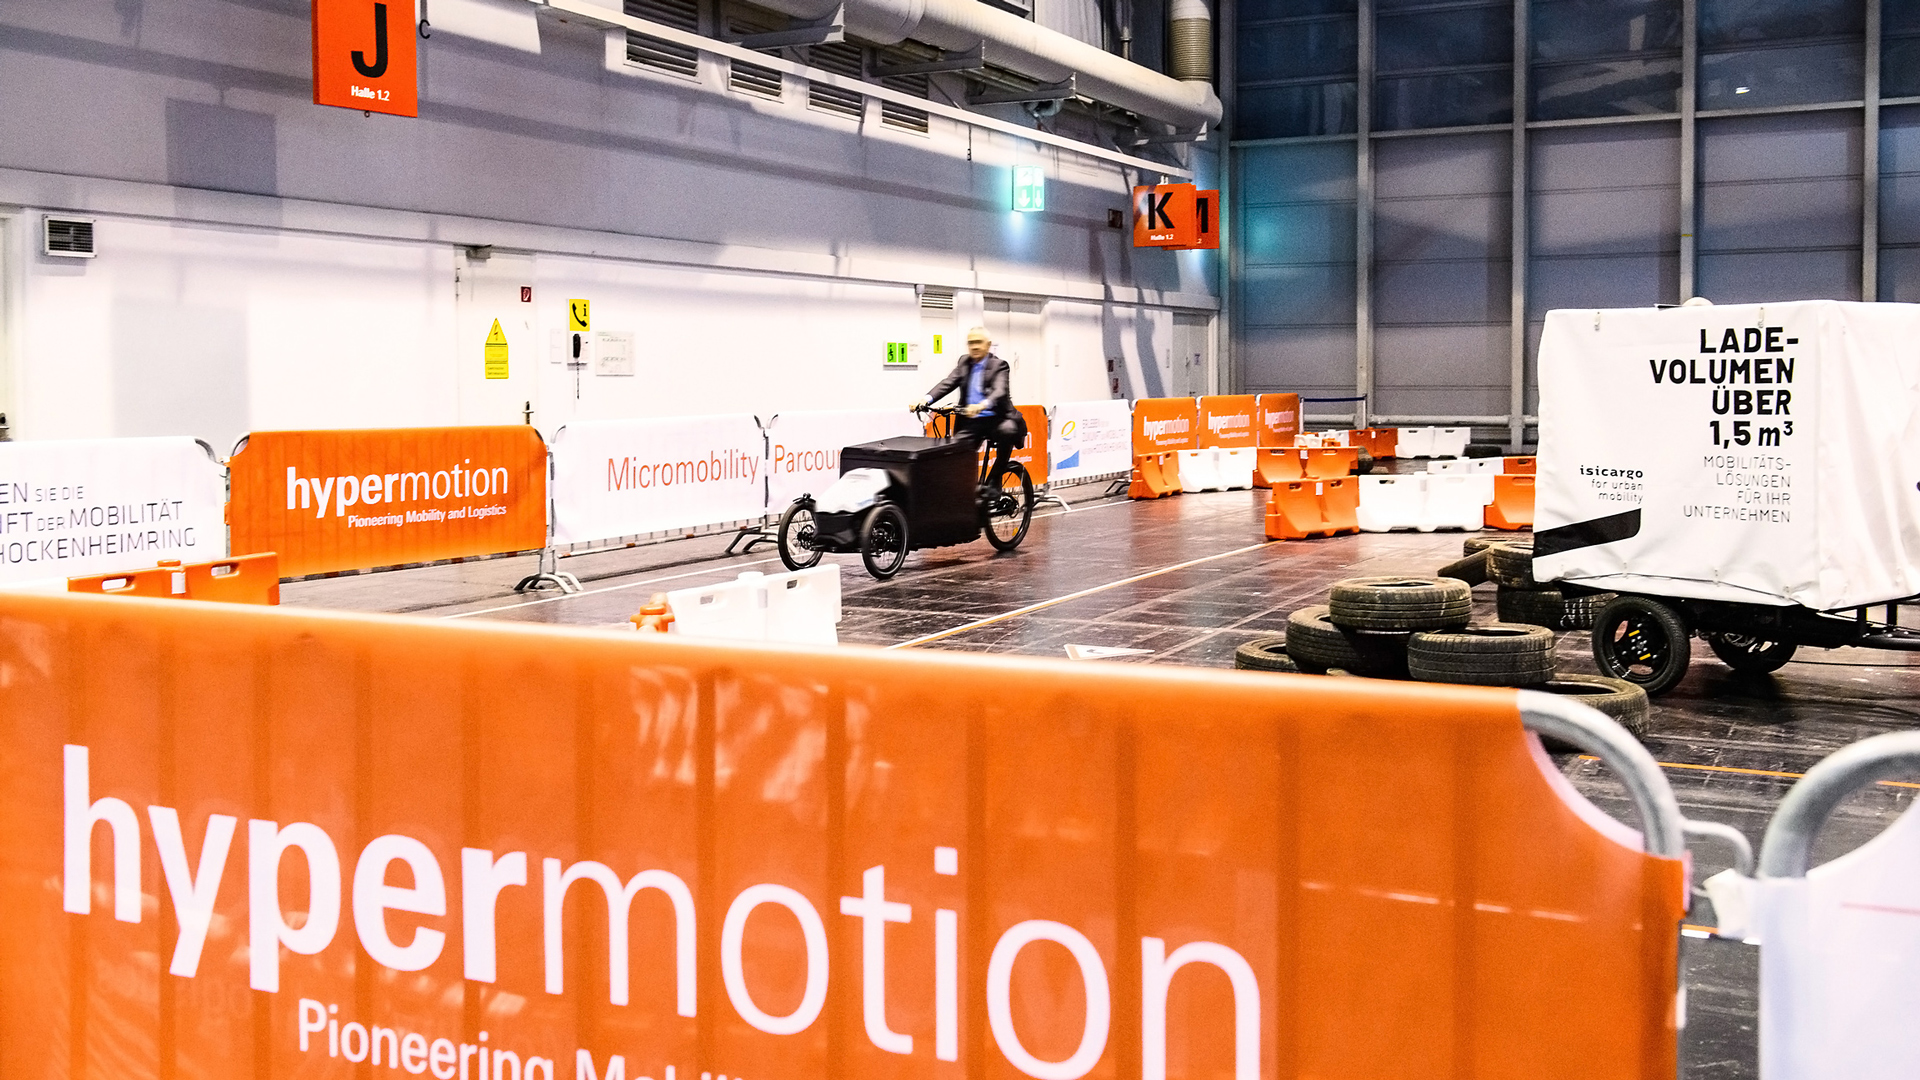 Micro Mobility Parcours auf der Hypermotion